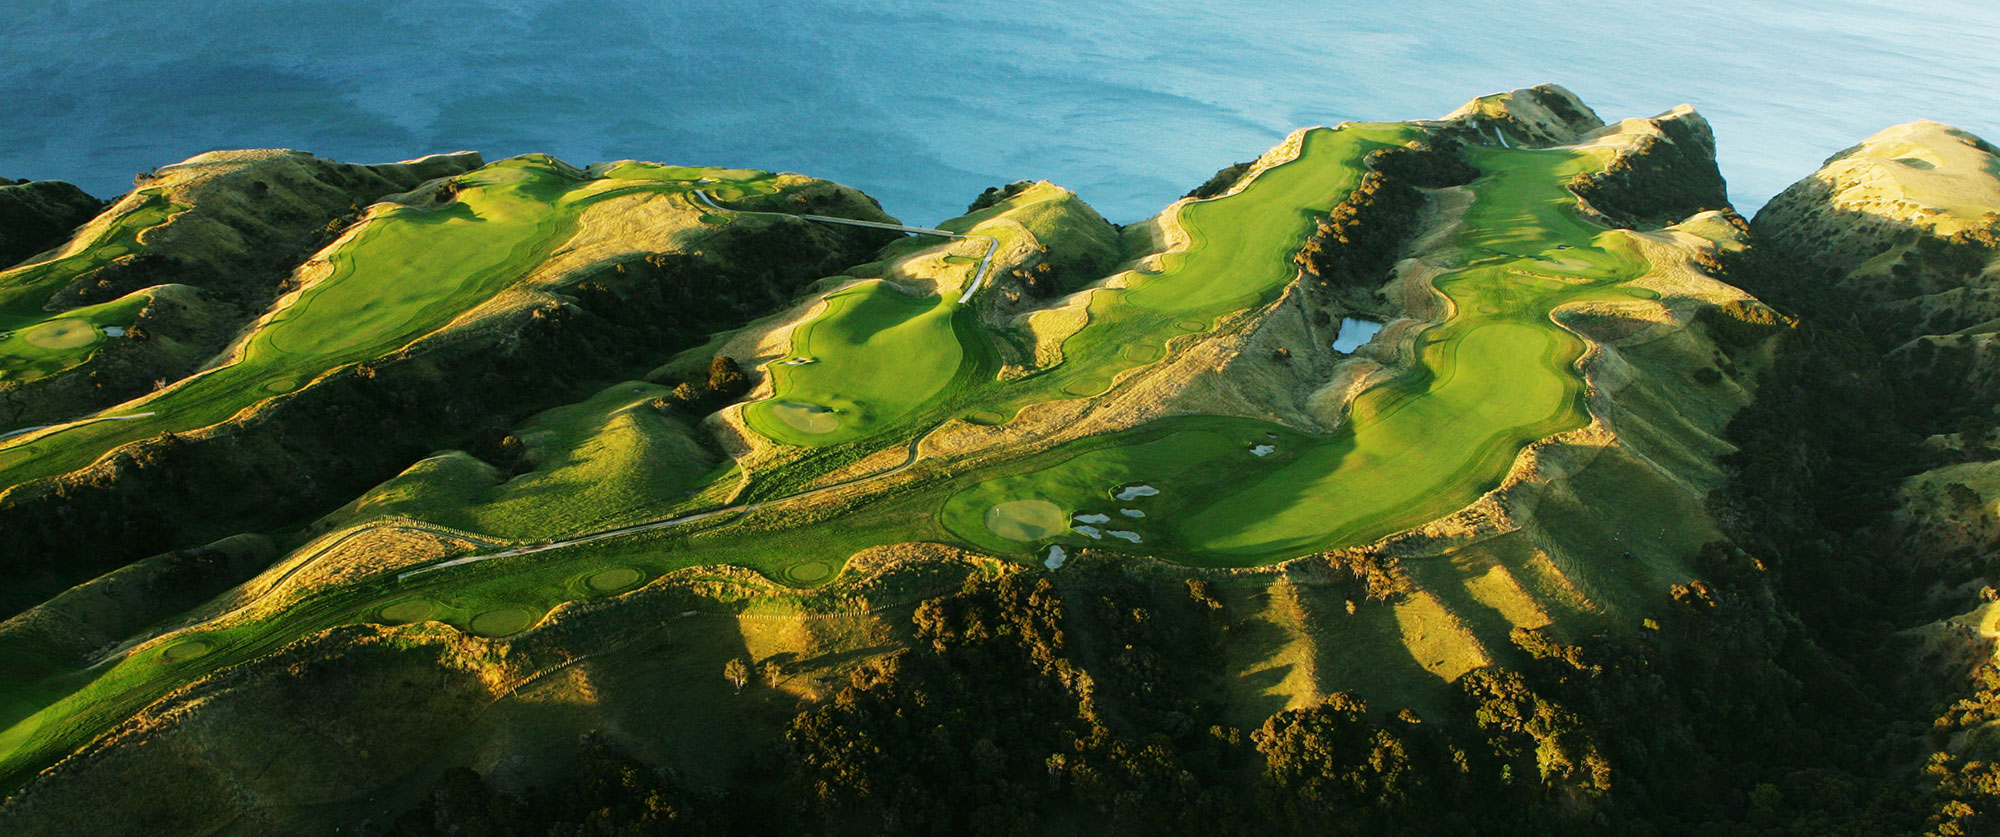 Golf at Cape Kidnappers, Hawkes Bay, New Zealand - Ranked Among World's Top 100 Golf Courses